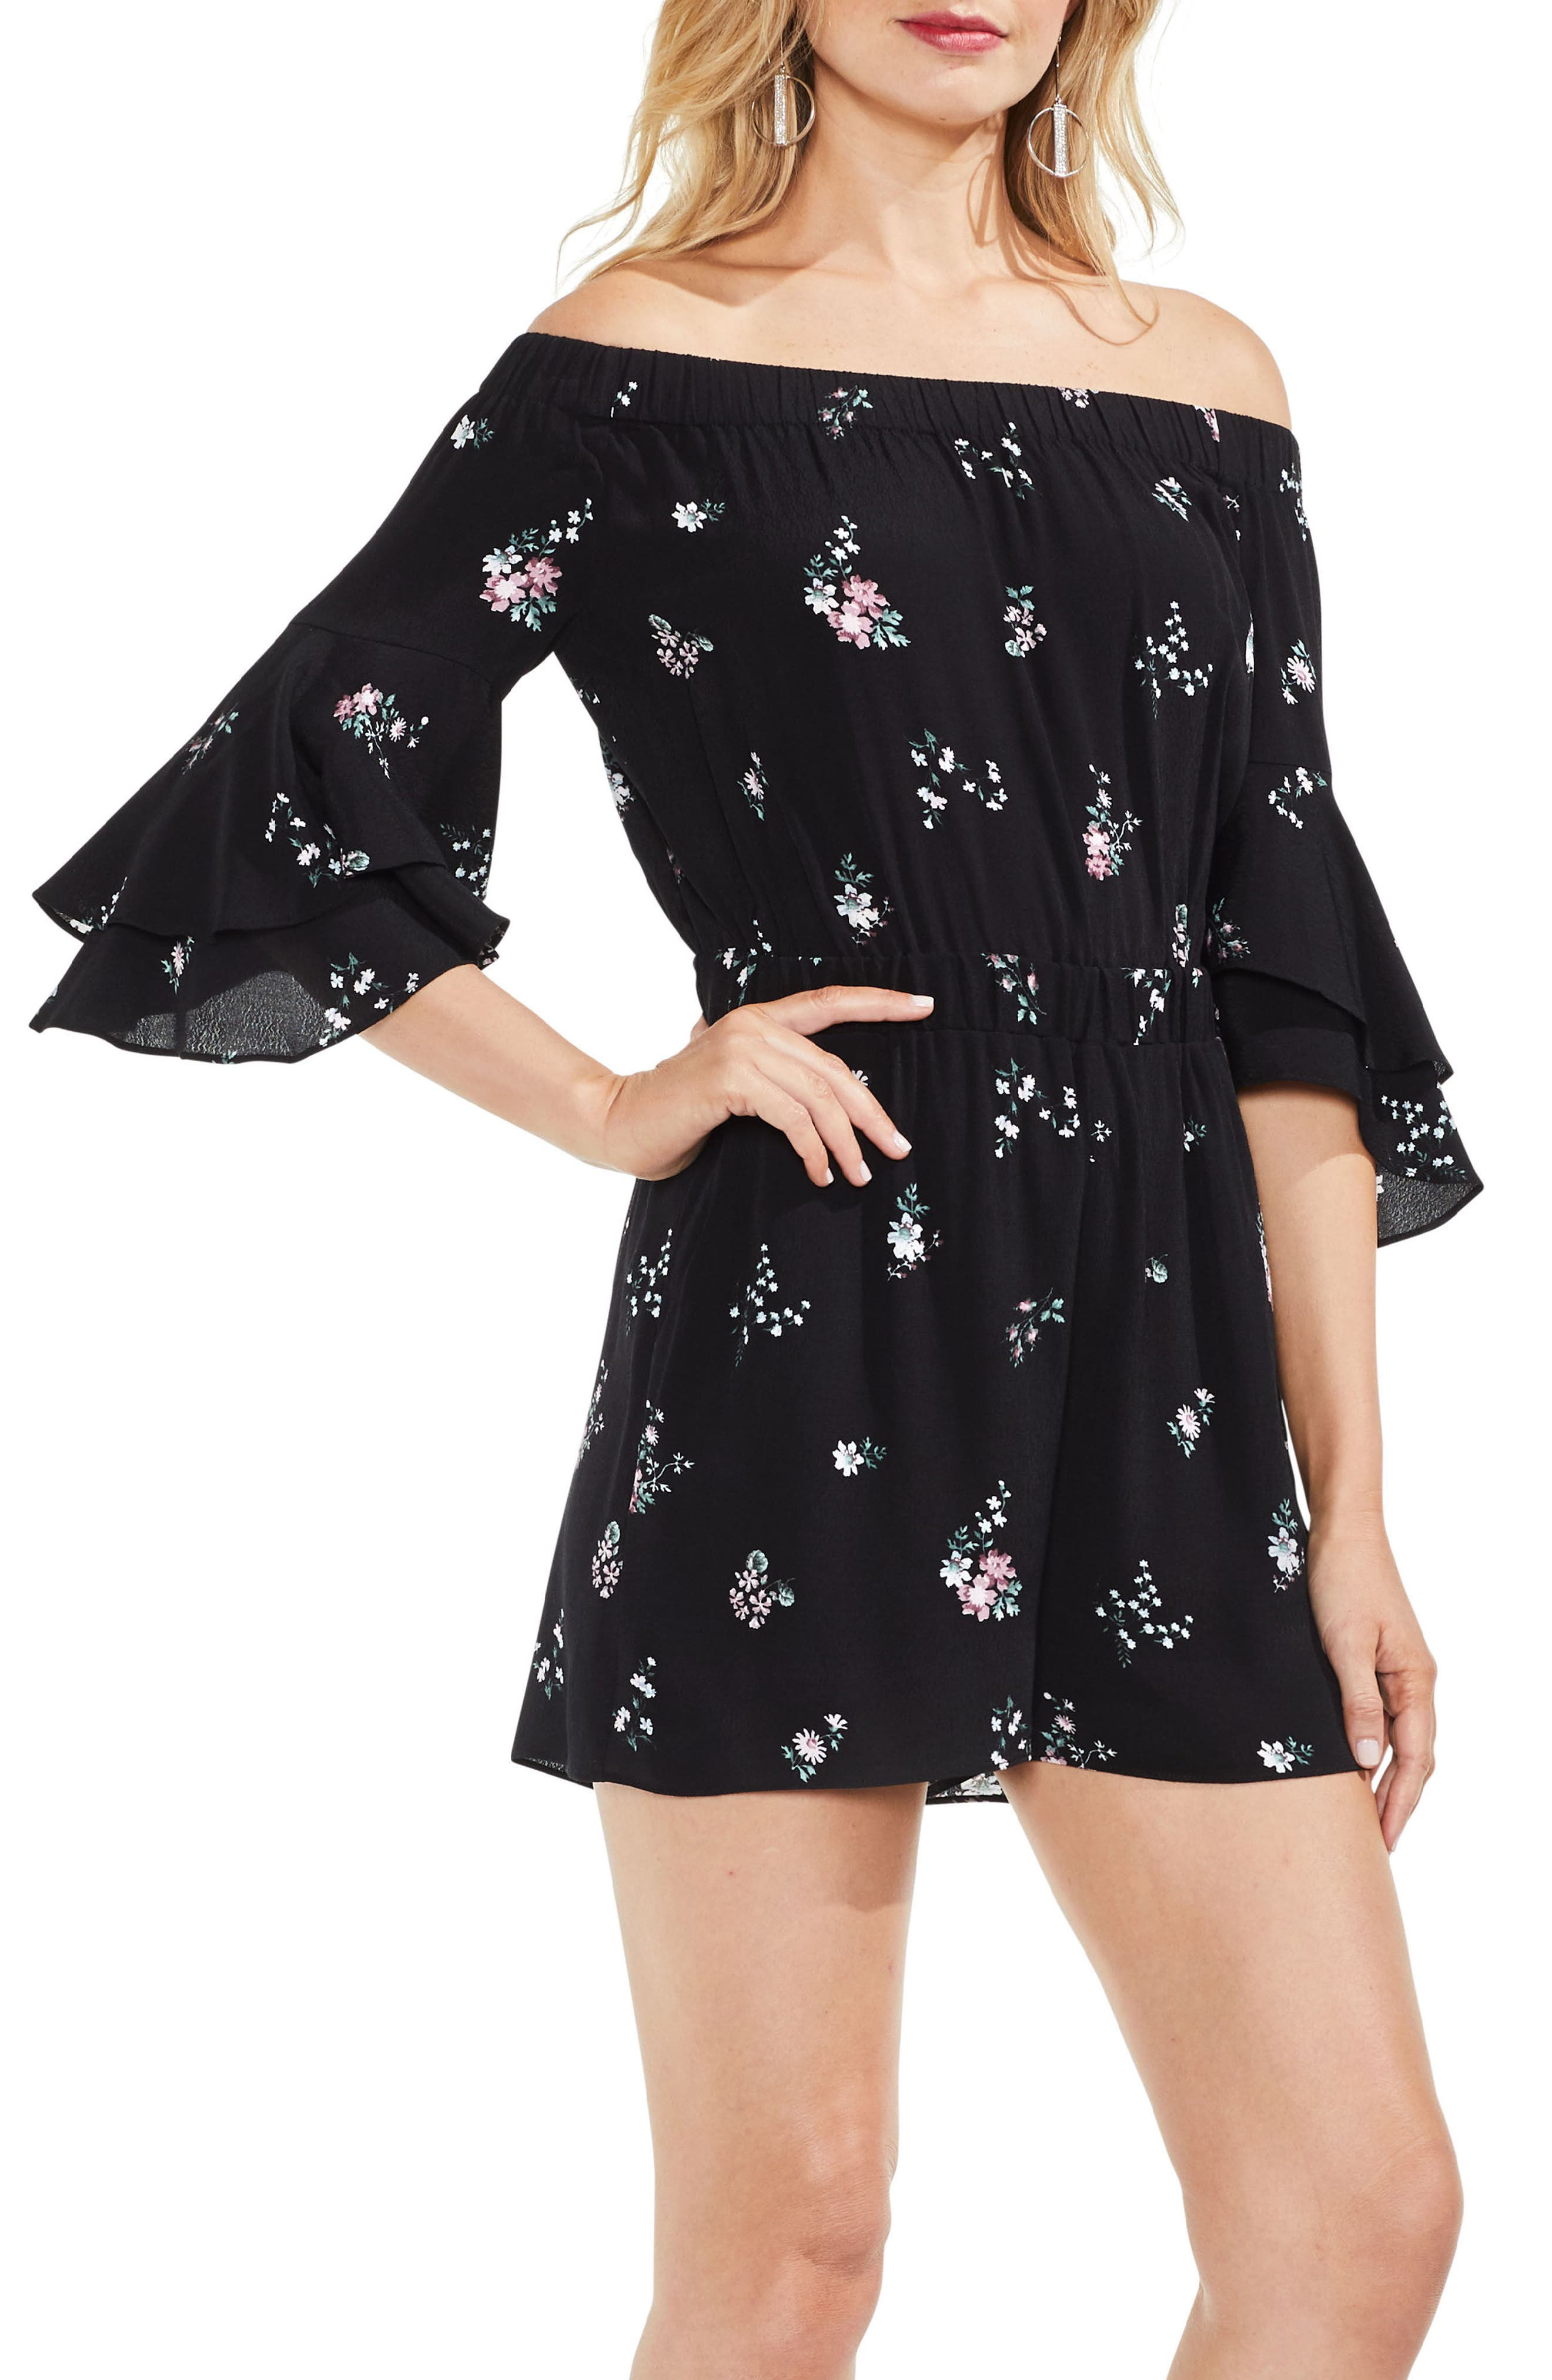 Off the Shoulder Ruffle Sleeve Floral Romper,                             Main thumbnail 1, color,                             006